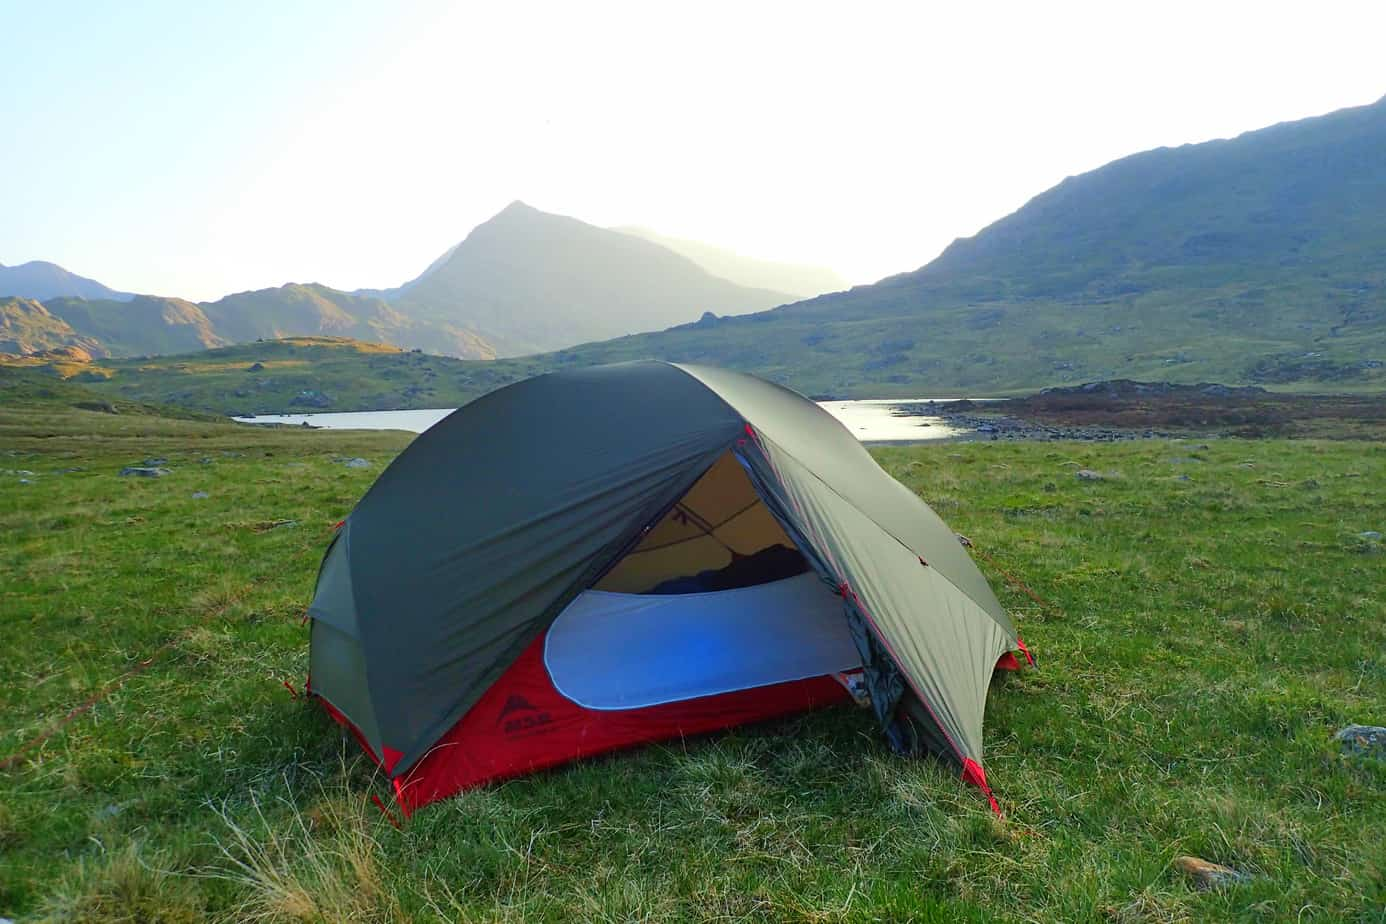 A beginners guide to wild camping